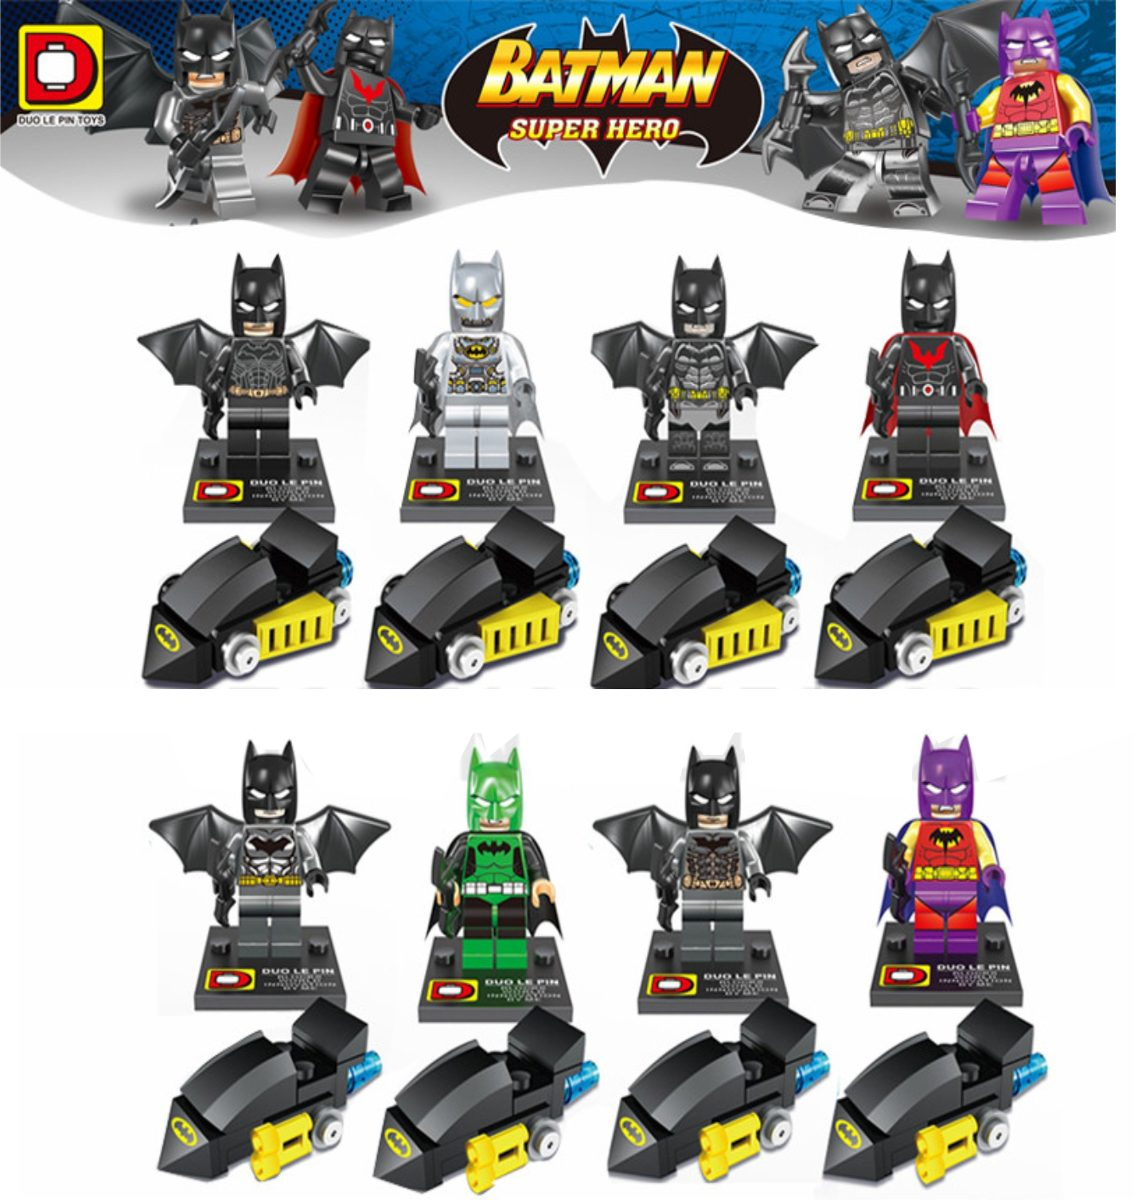 figuras compatibles con lego de batman con mini batimovil en mercado libre. Black Bedroom Furniture Sets. Home Design Ideas